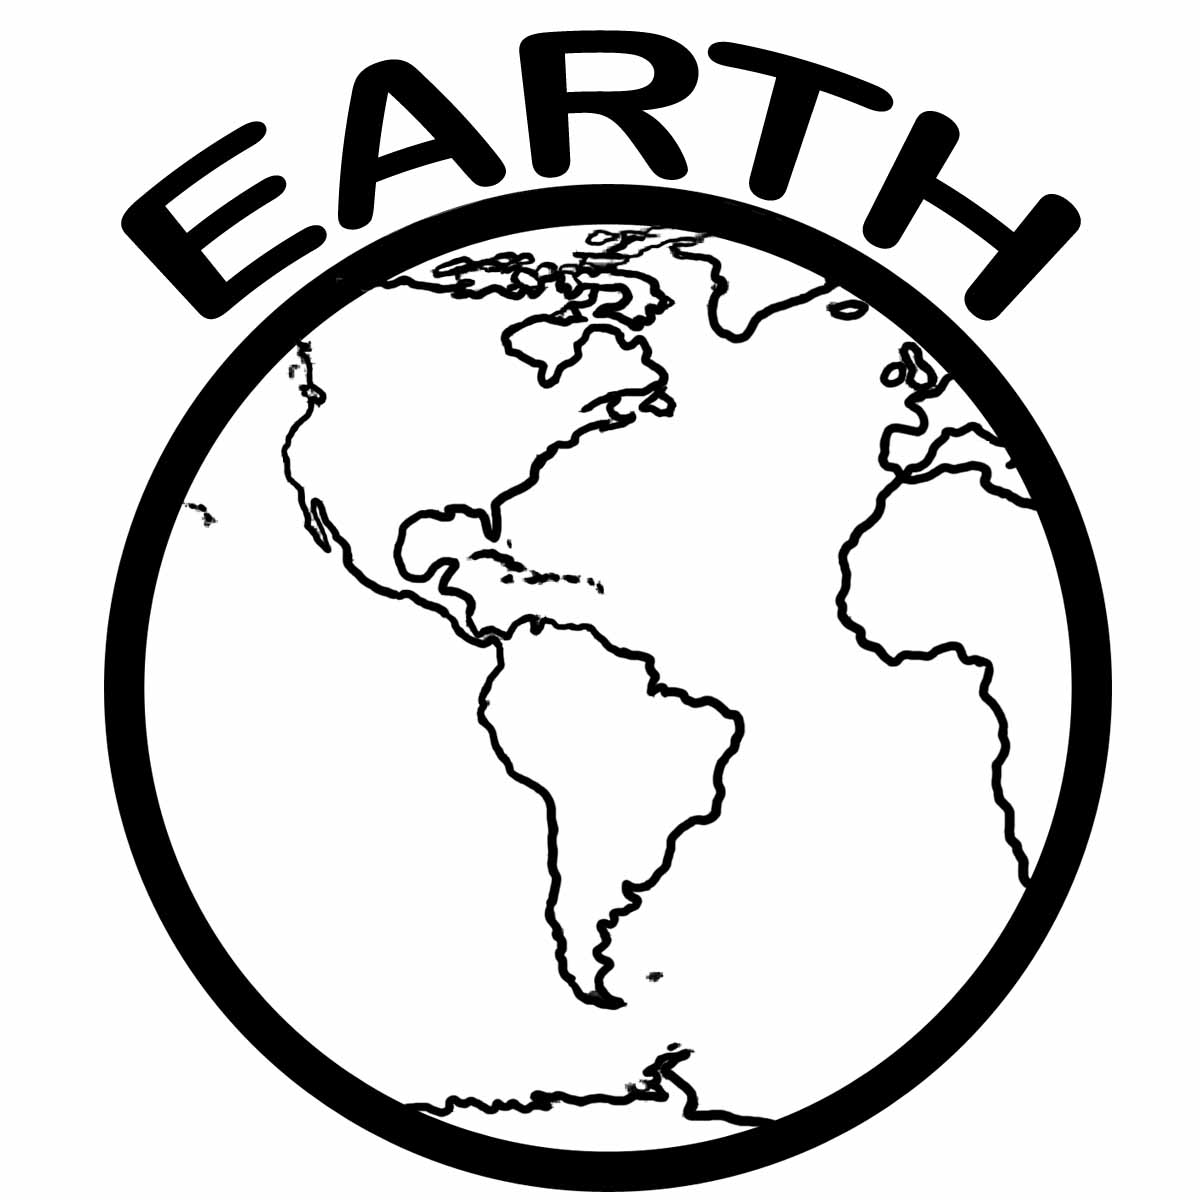 Earth Clip Art Black And White Clipart Panda